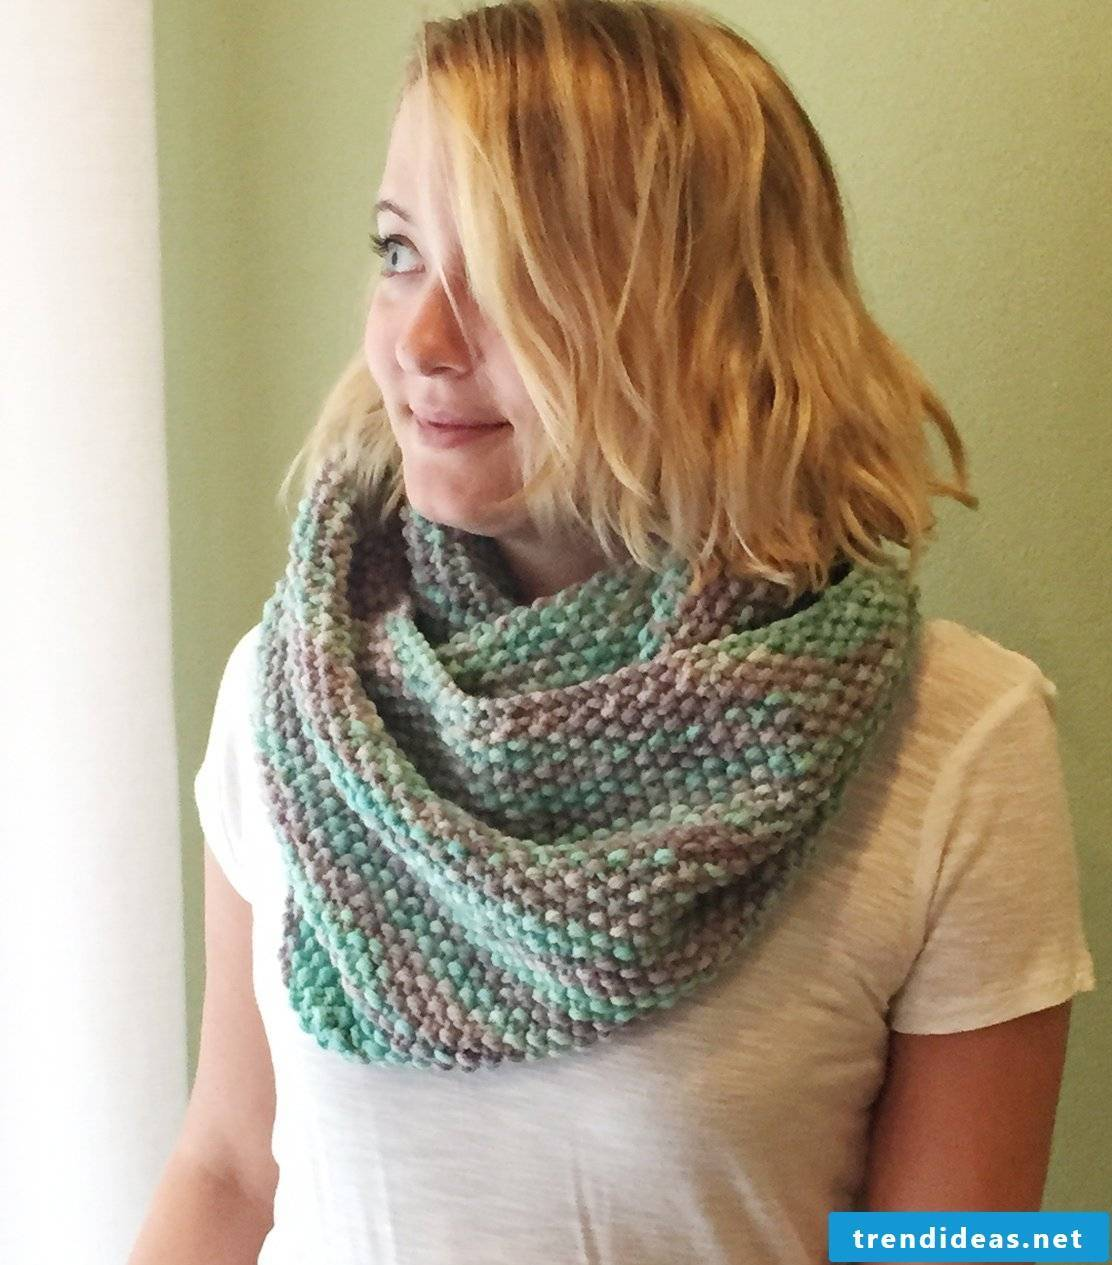 Knit a colorful scarf